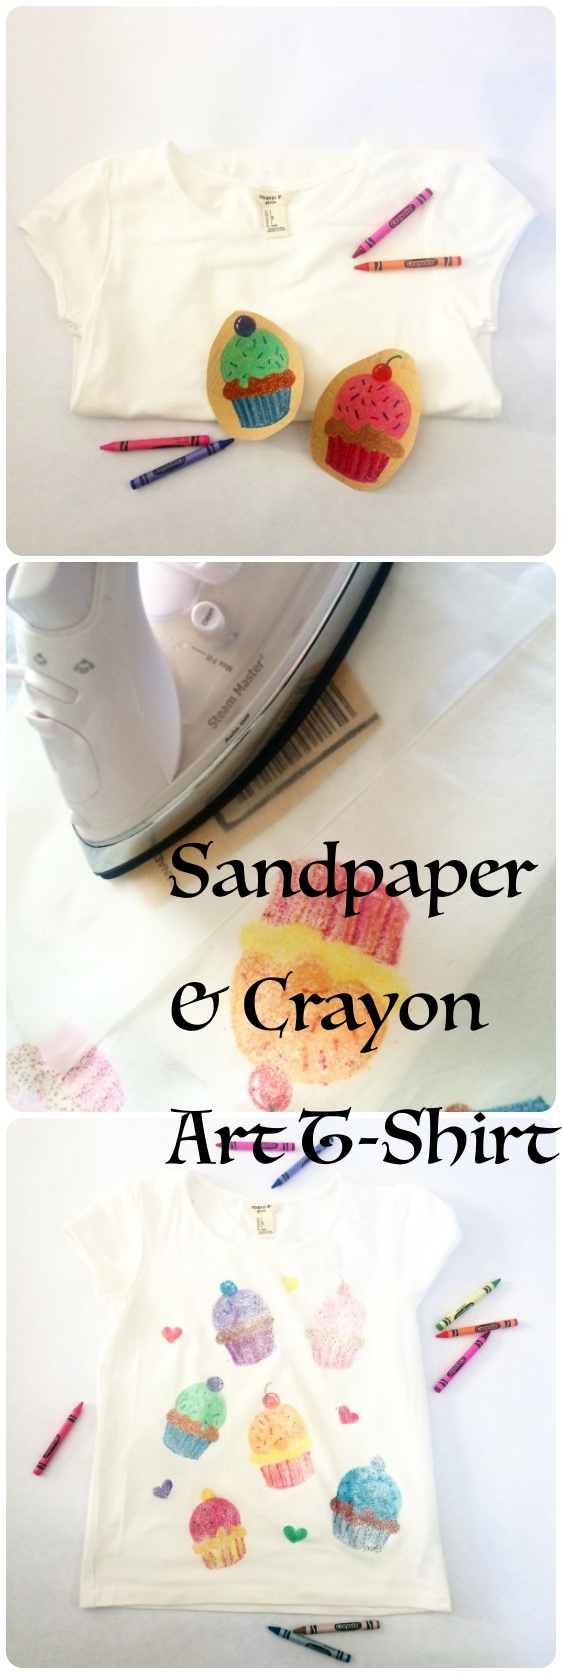 How to Make an Iron on Sandpaper Art T-Shirt